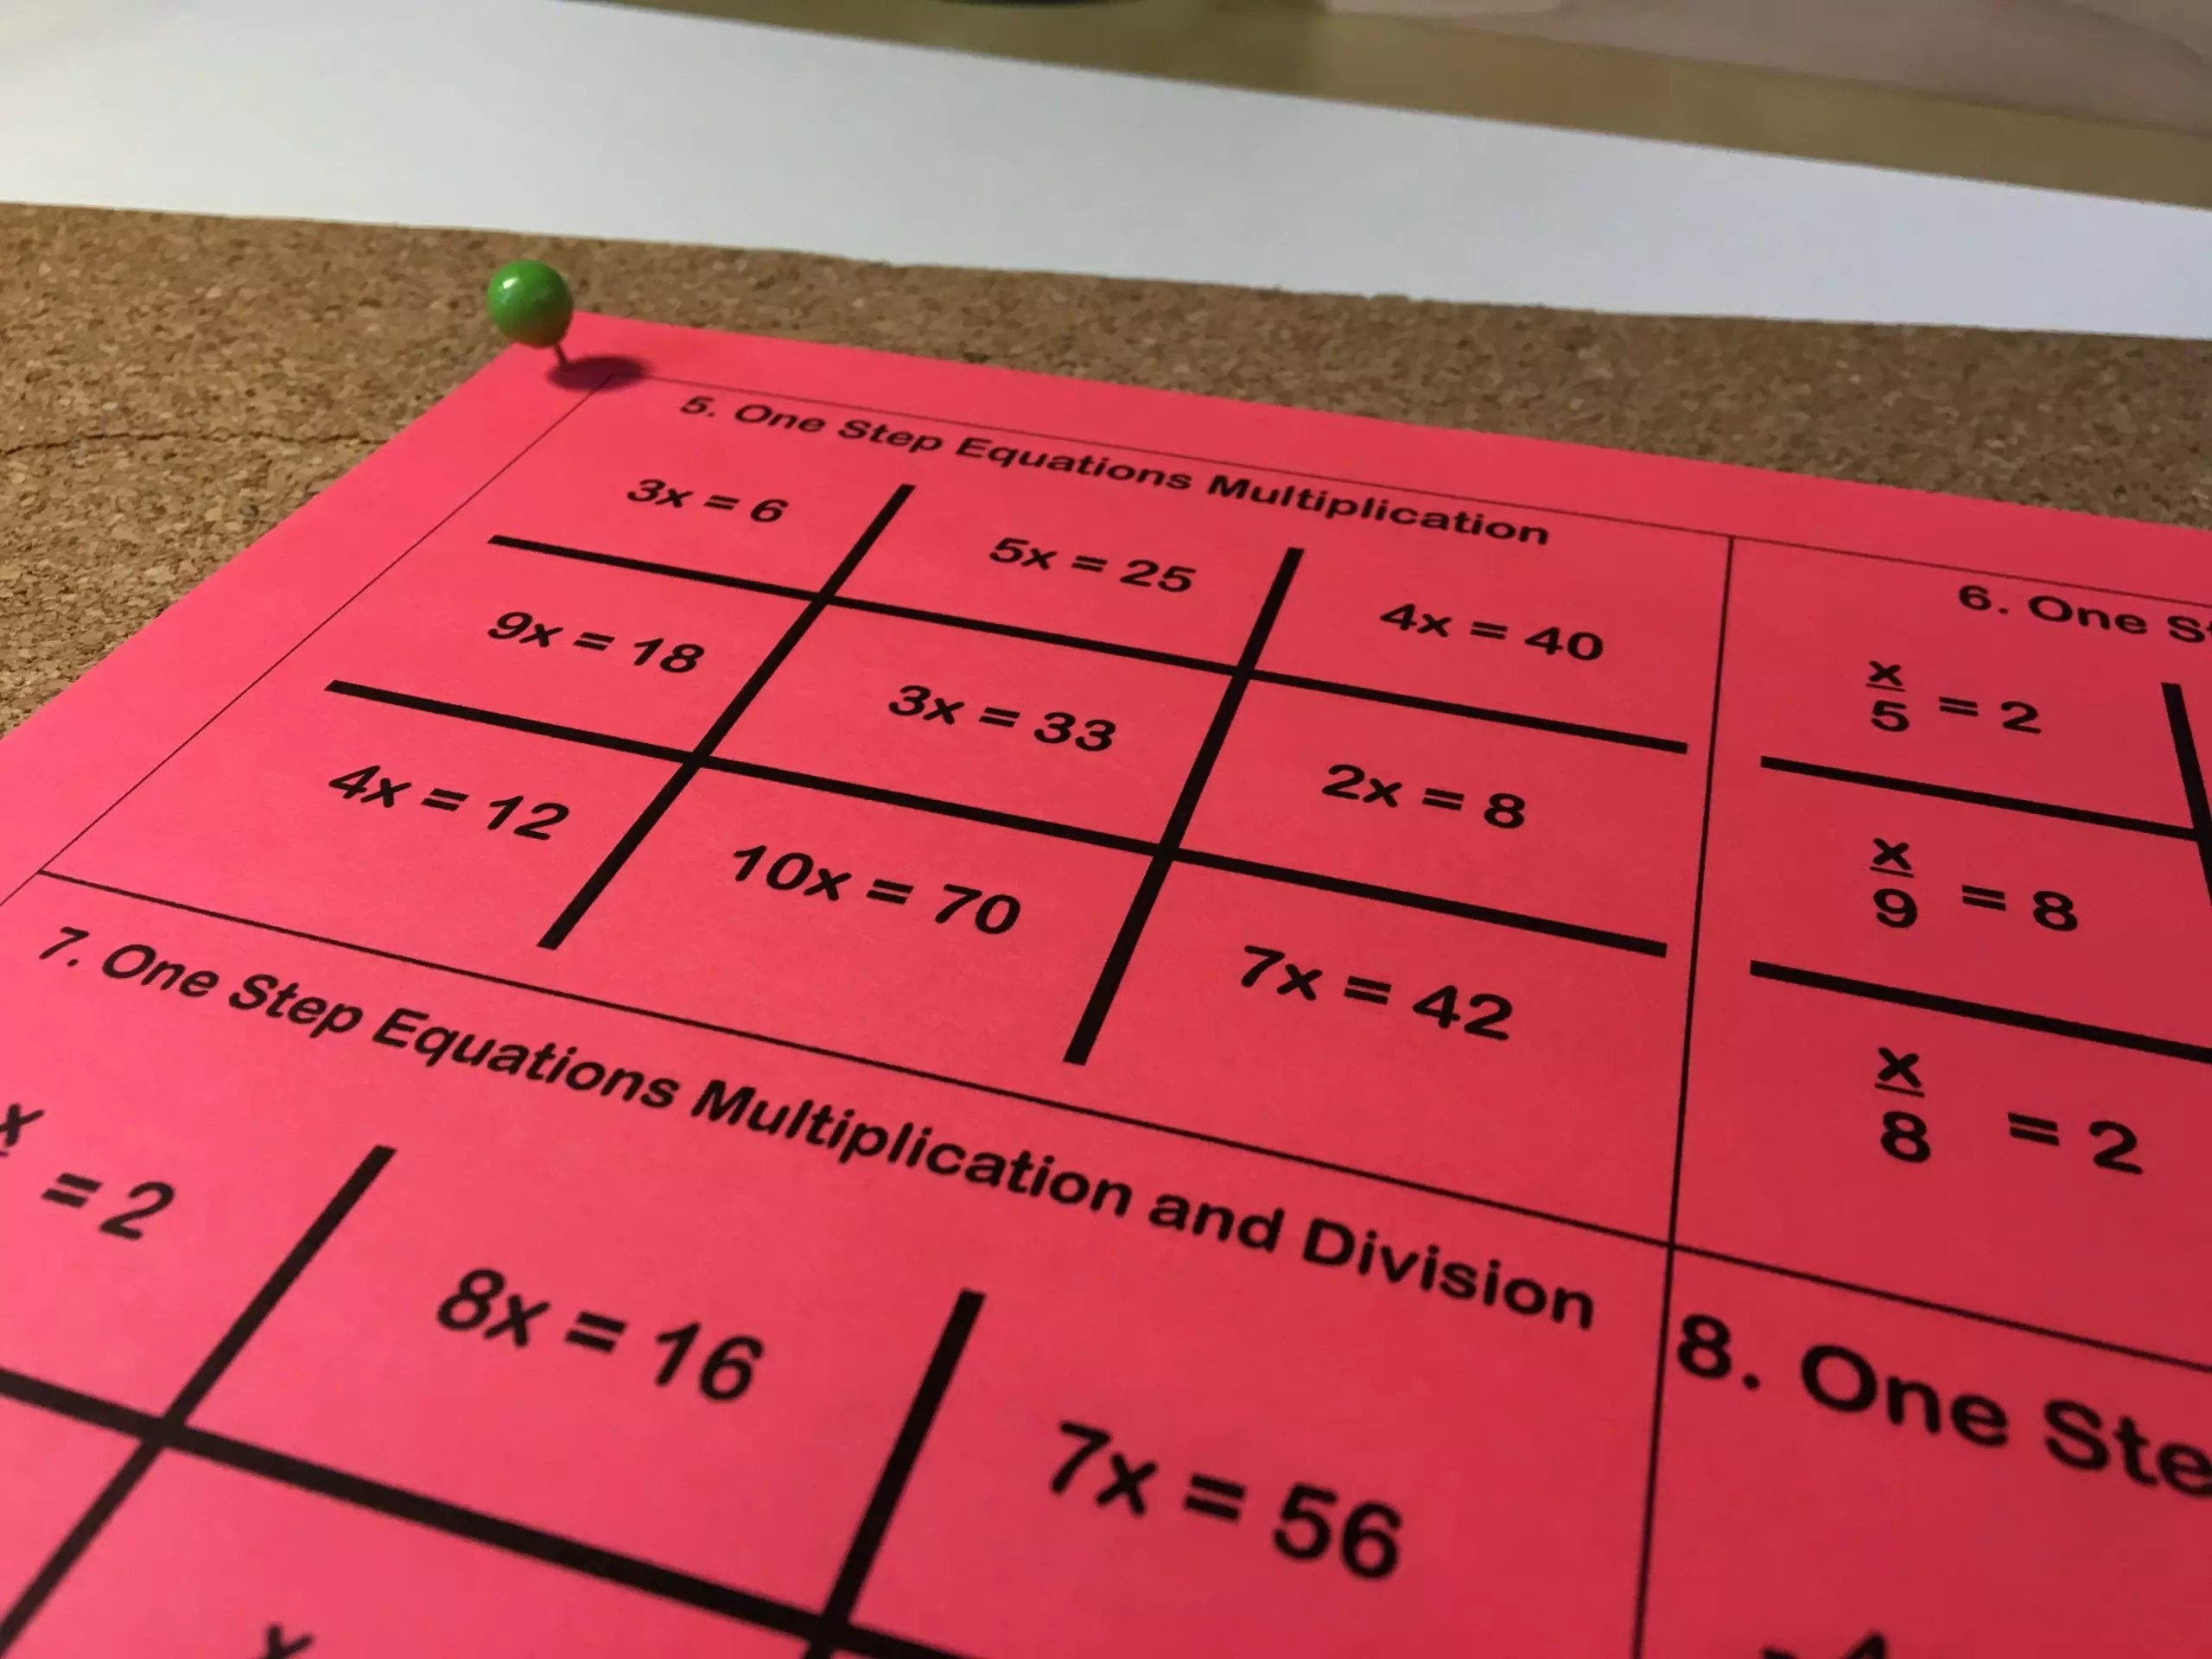 small resolution of 12 One Step Equation Activities That Are Out of this World - Idea Galaxy